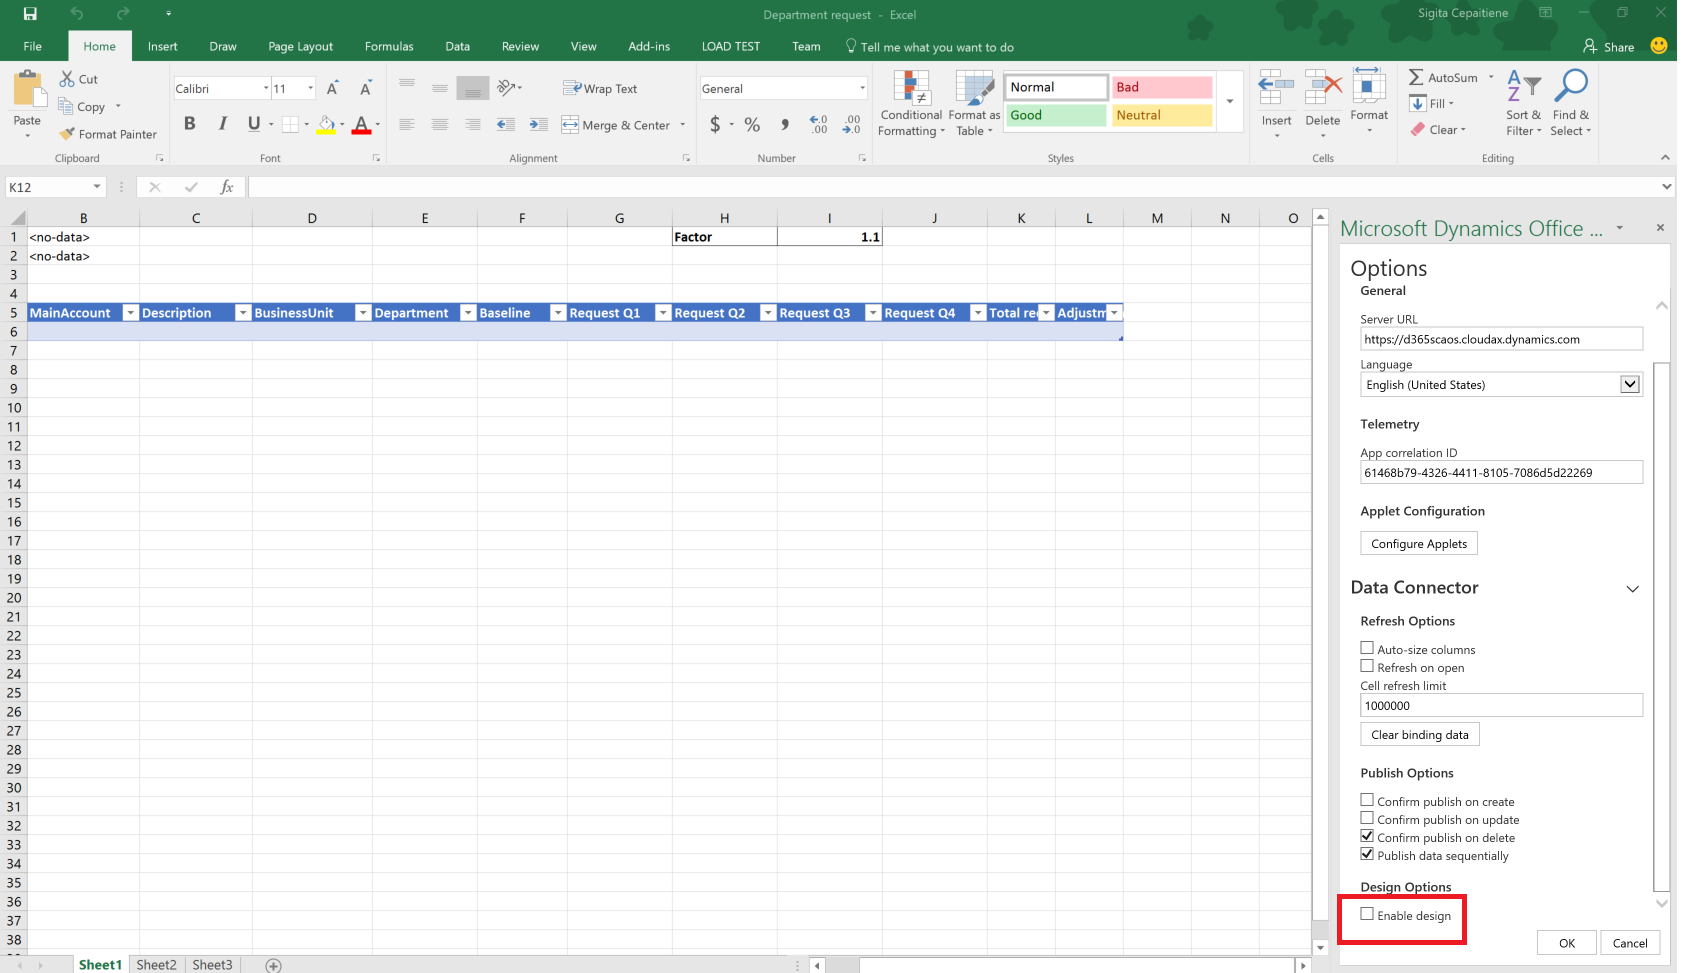 How To Create A Budget Spreadsheet In Excel Regarding Budget Planning Templates For Excel  Finance  Operations